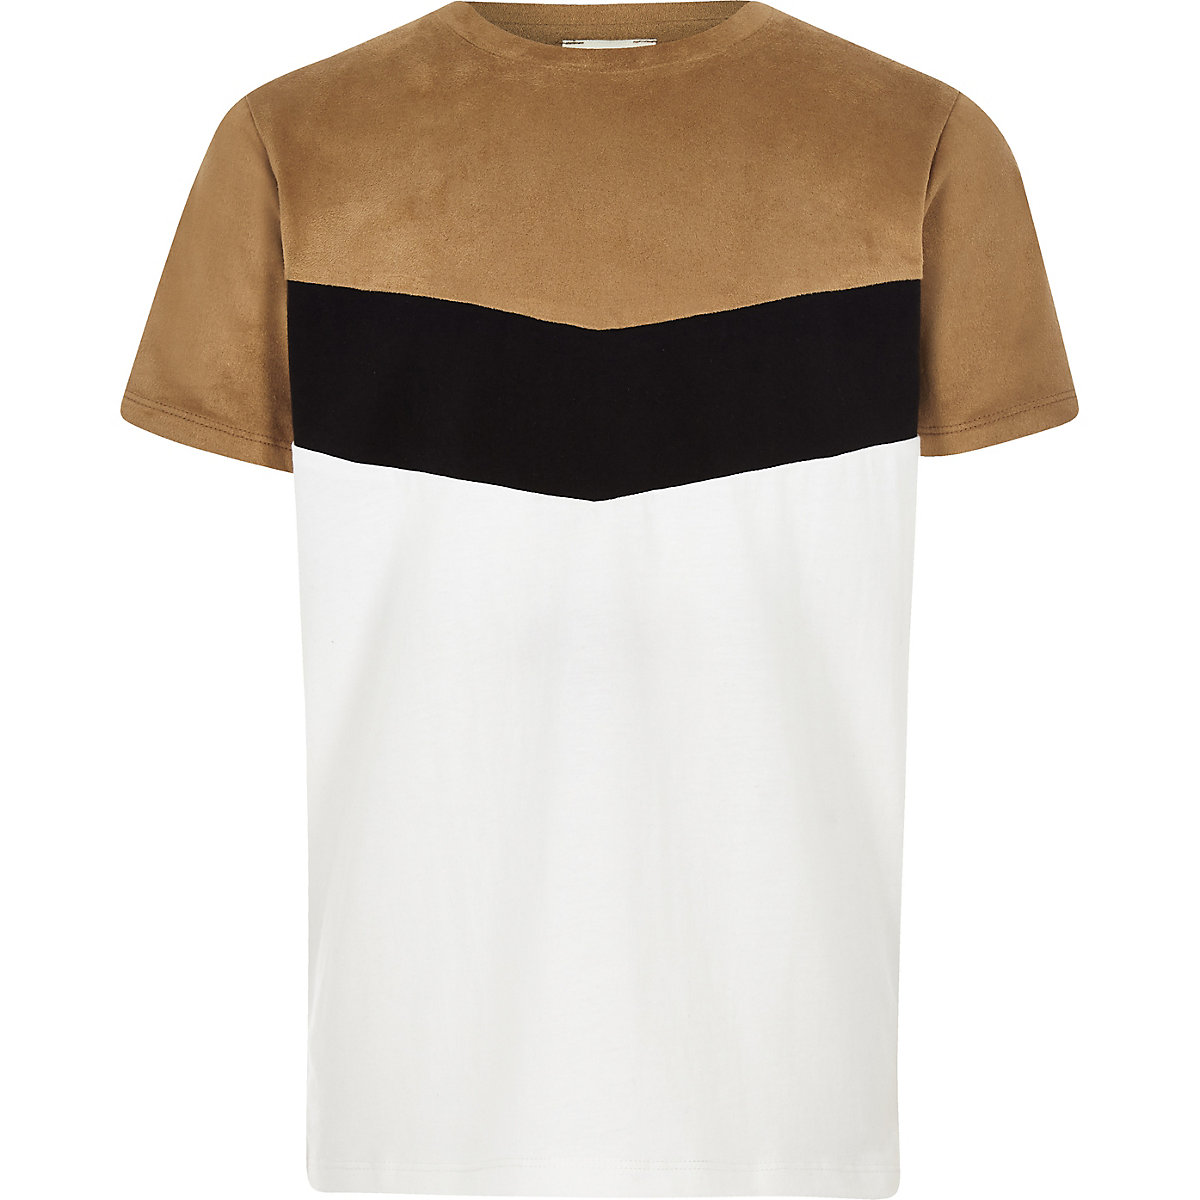 Boys brown chevron color block T-shirt